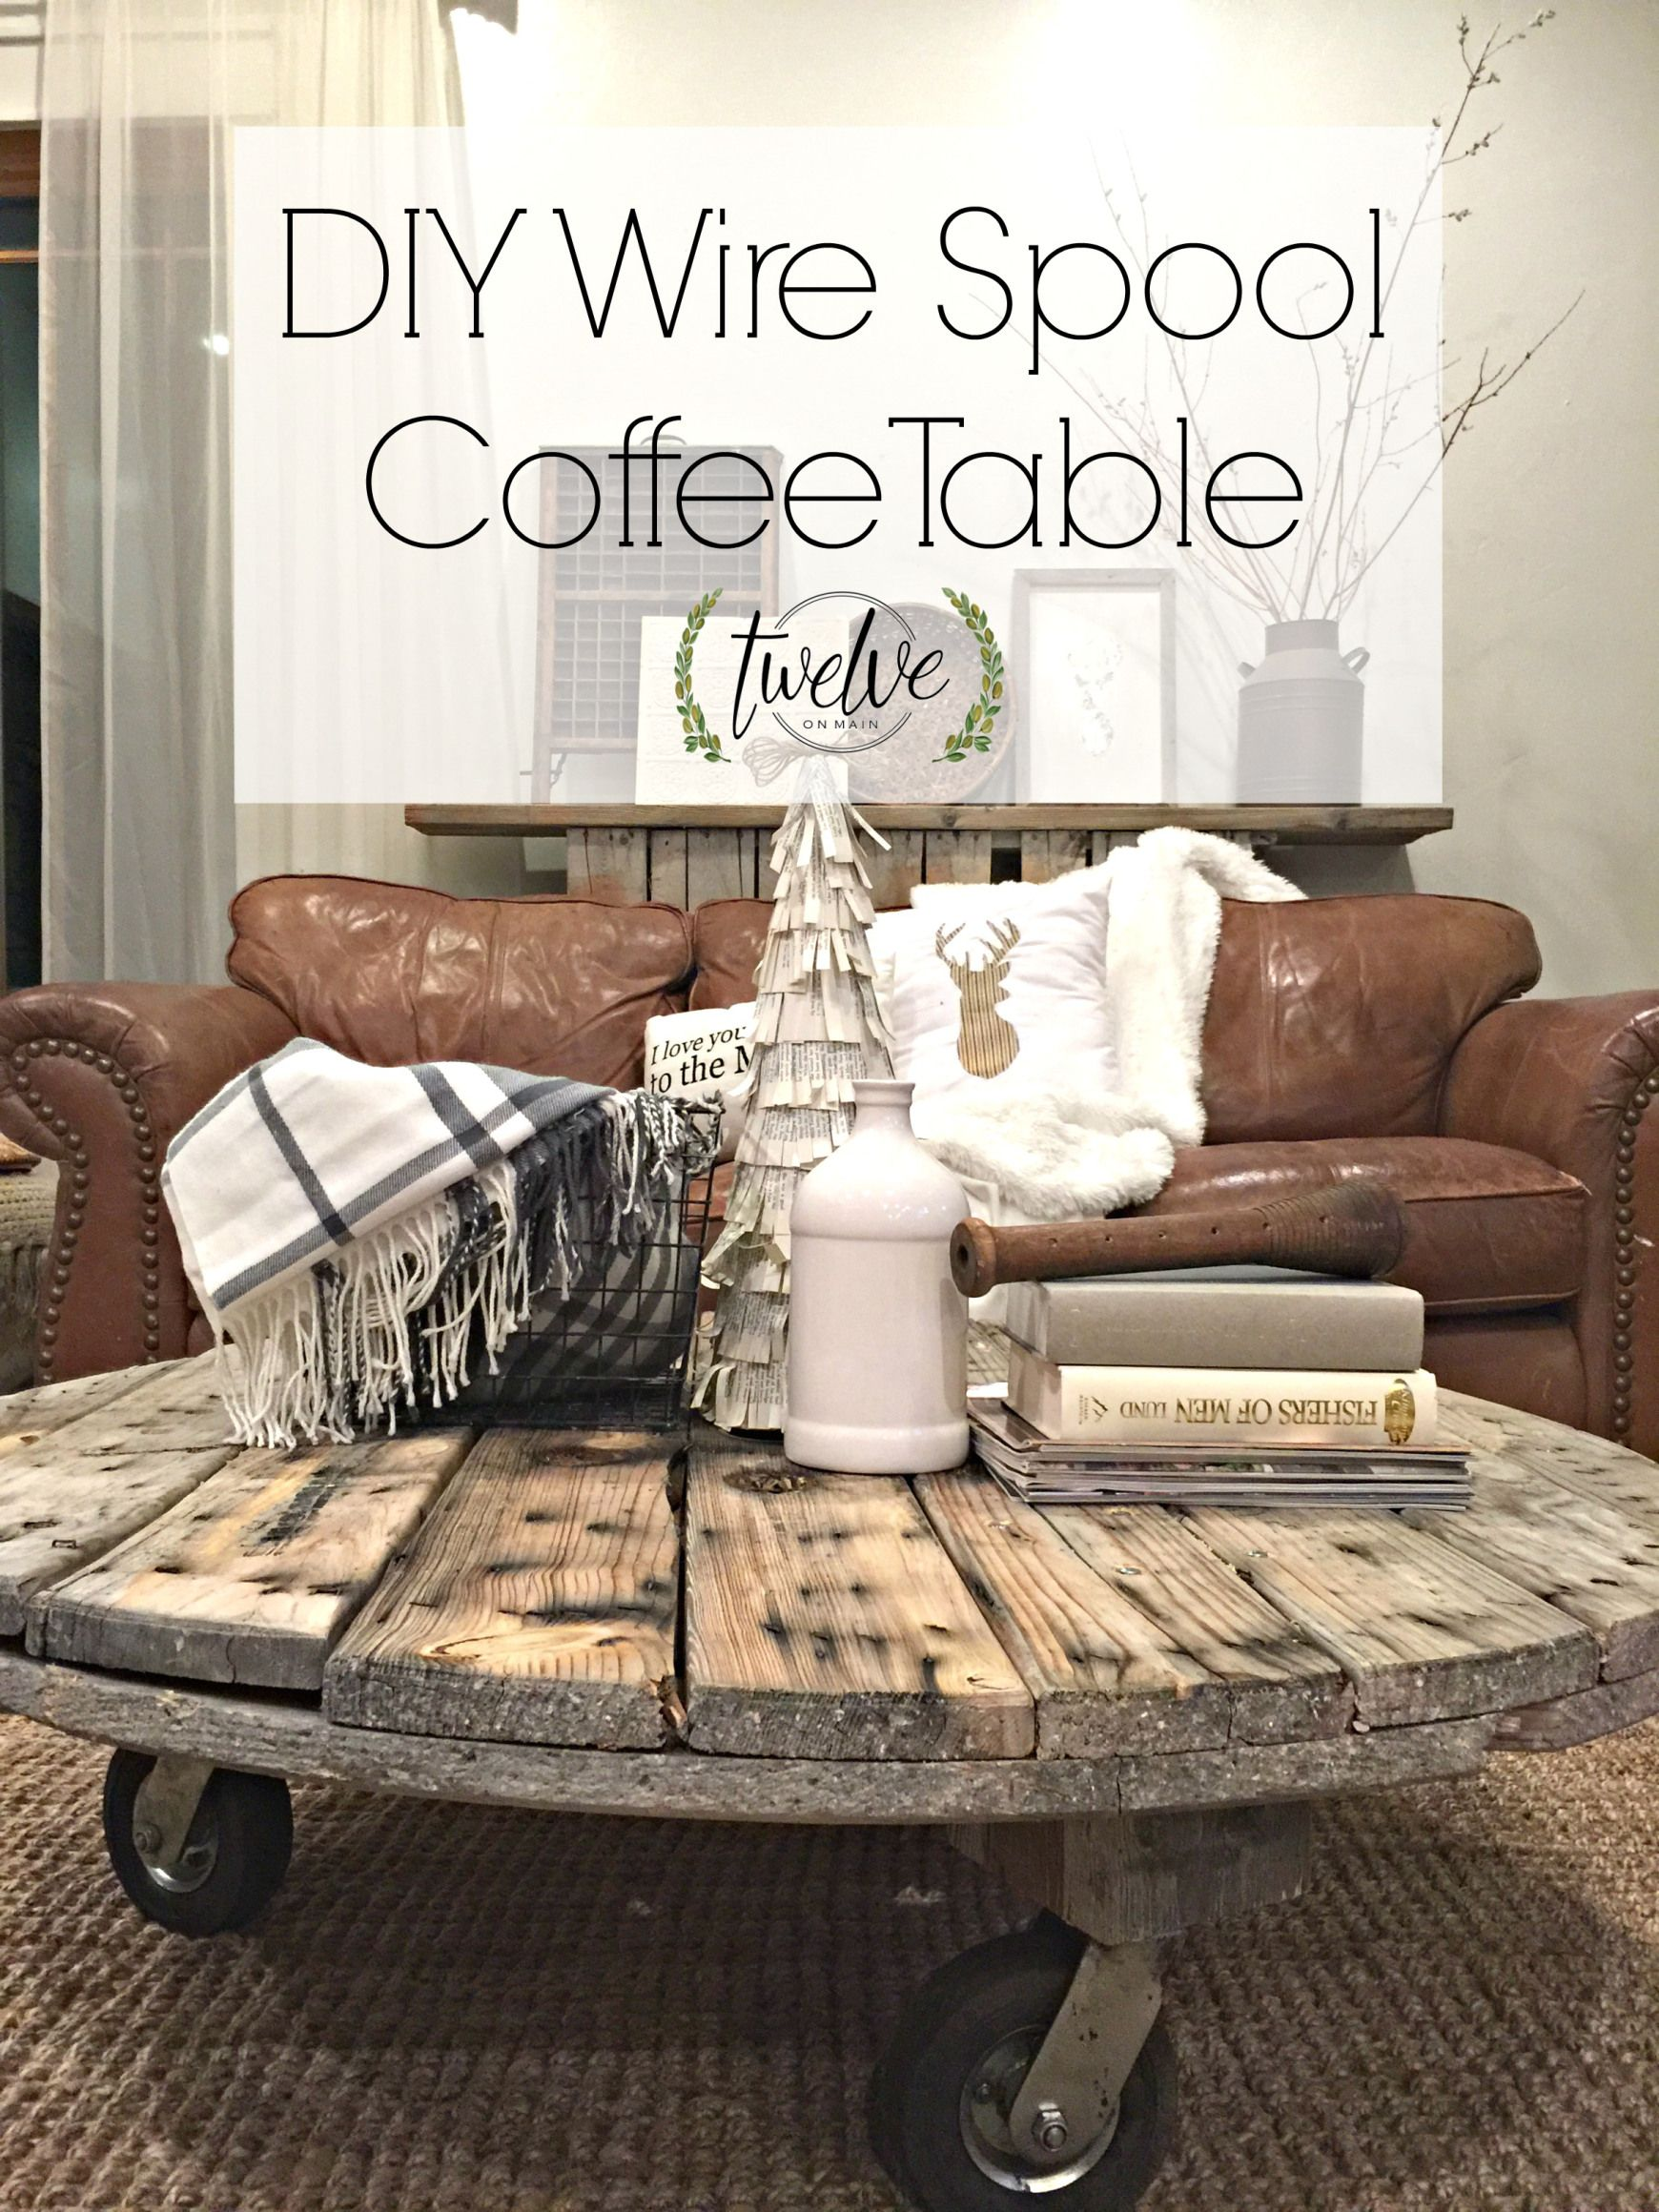 Diy Wire Spool Coffee Table Tables Wooden Spools